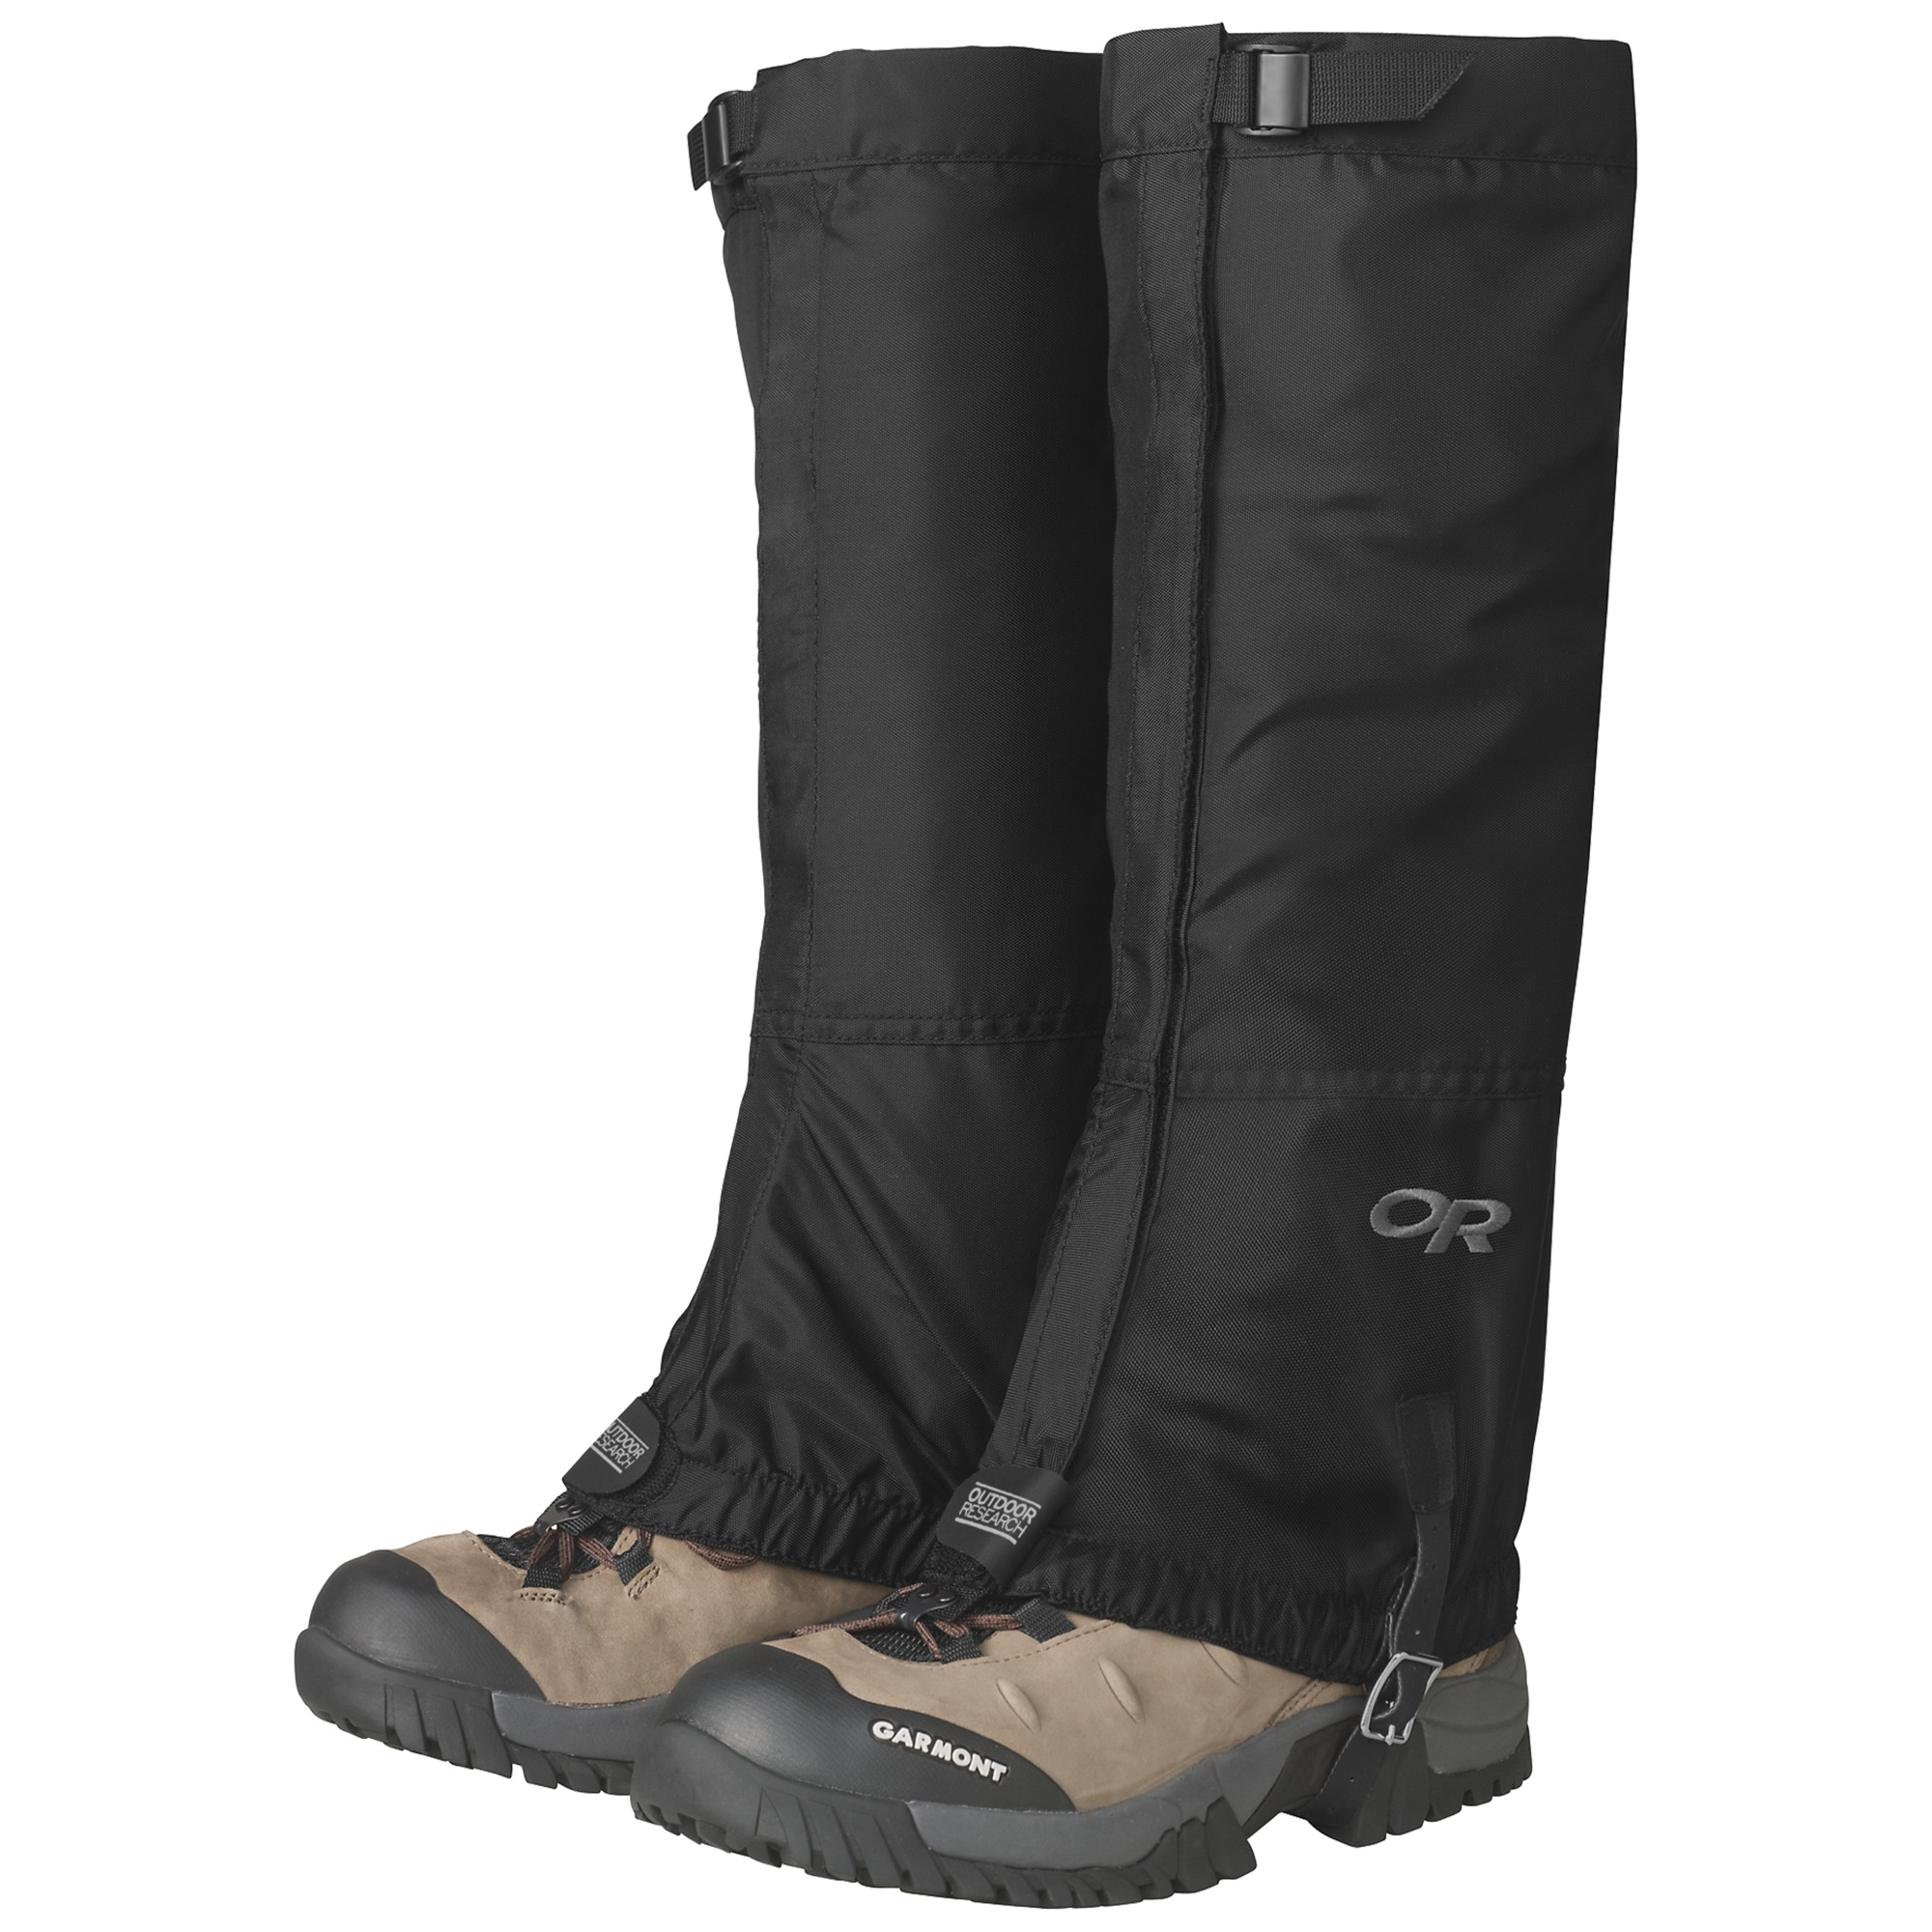 970f3d1e40a51 Men's Rocky Mountain High Gaiters - black | Outdoor Research